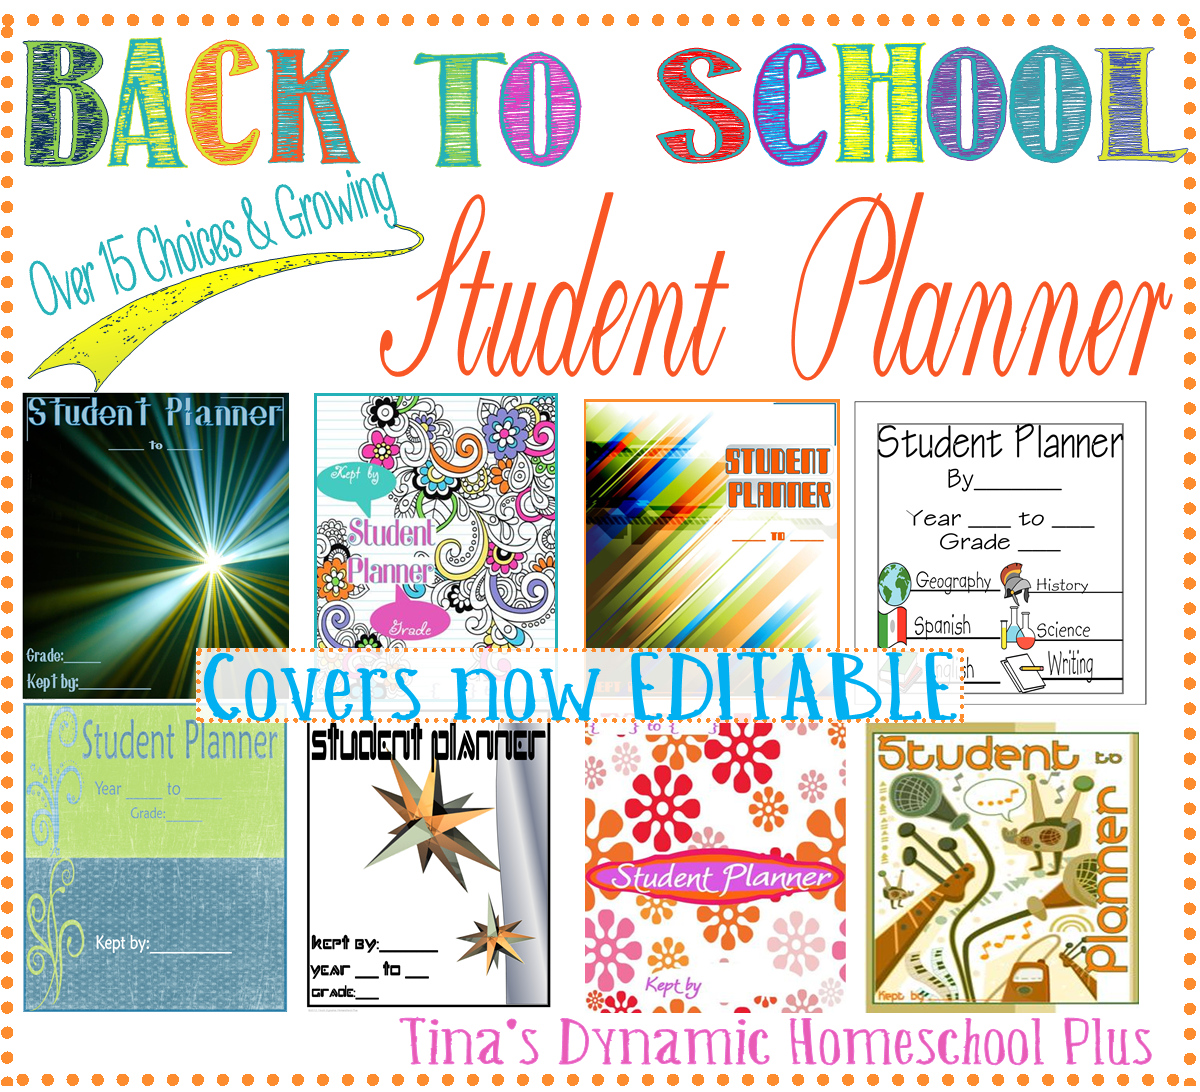 High School Student Planner With Subjects